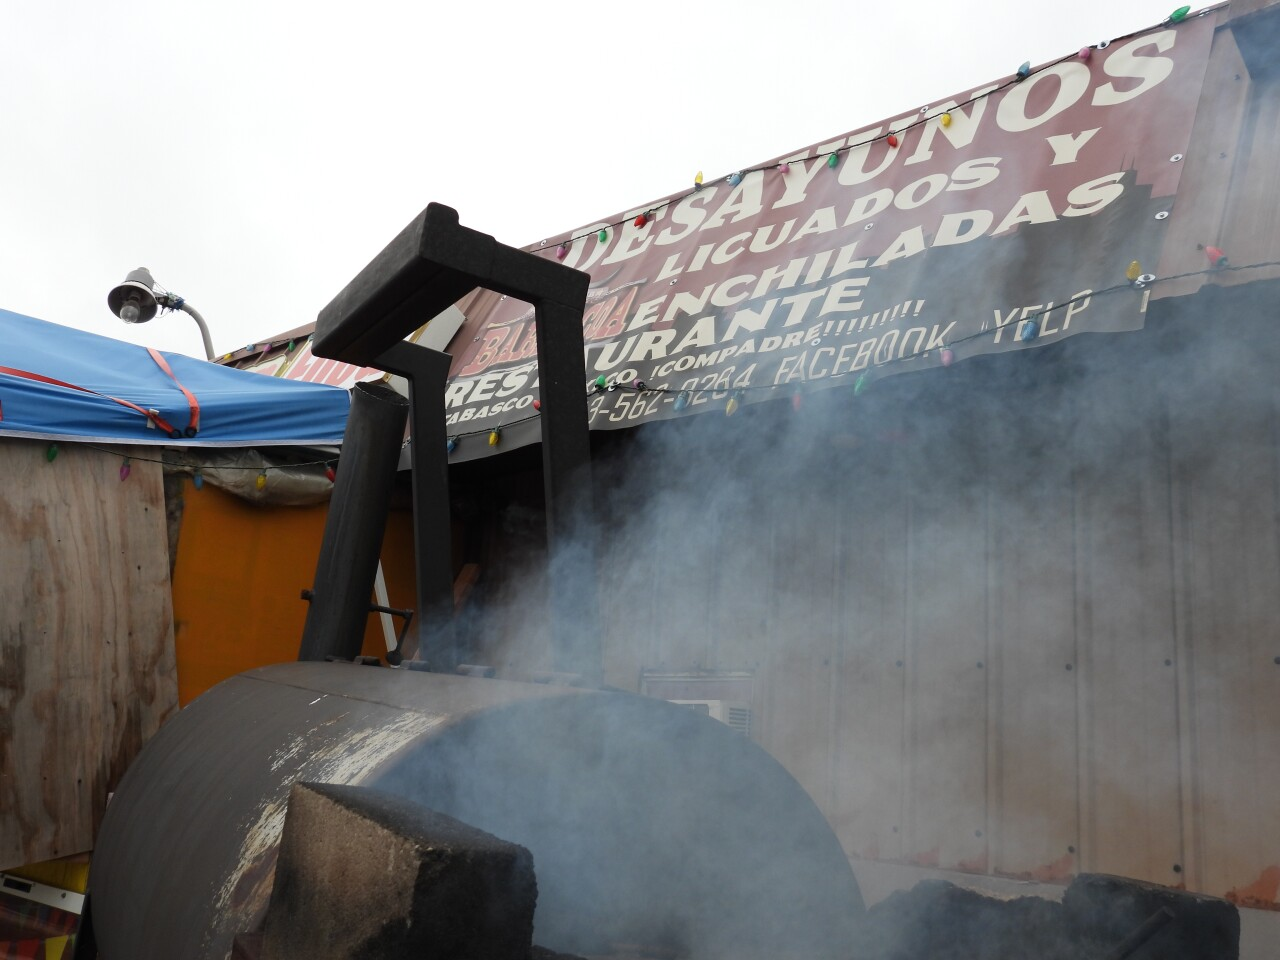 Meat is smoked in front of GG's Barbacoa Cafe.JPG